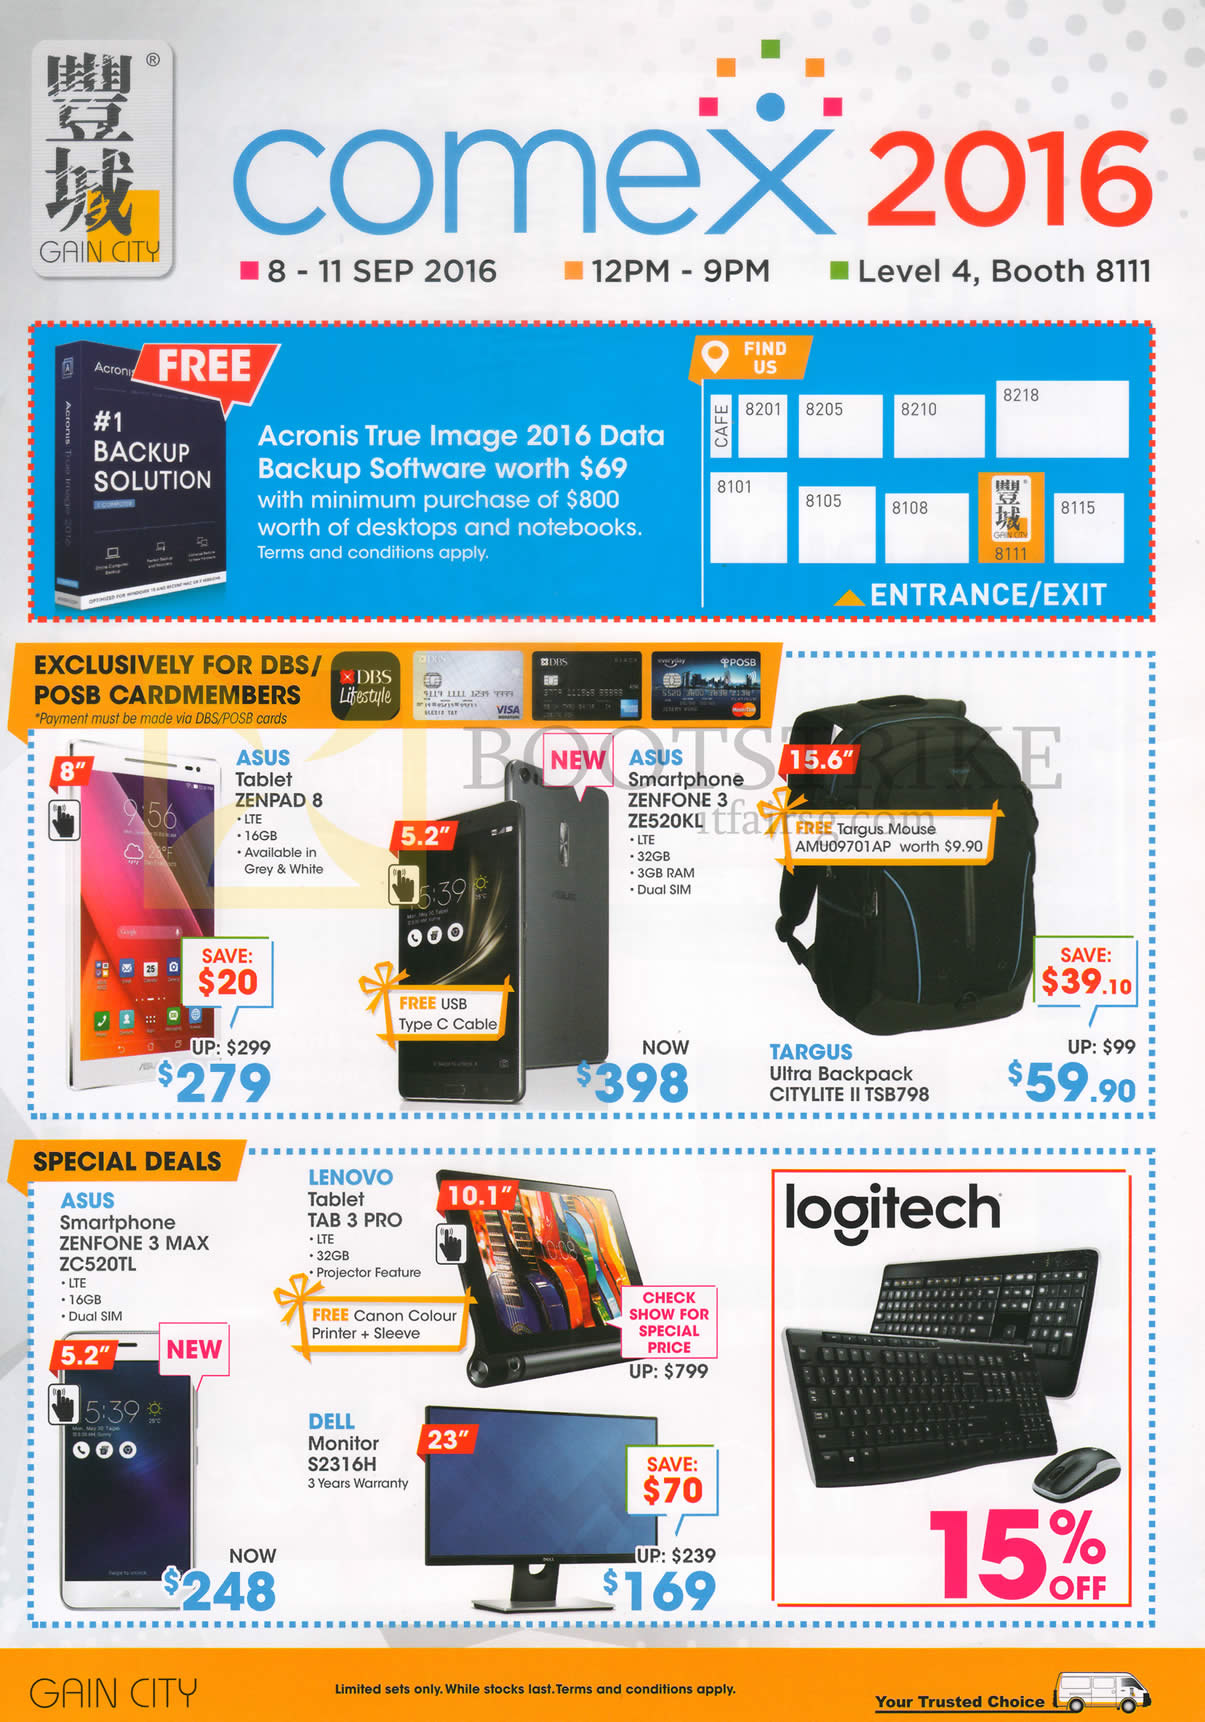 COMEX 2016 price list image brochure of Gain City Accessories Asus Zenpad 8, 3, 3 Max, Tab 3 Pro, Targus Backpack, Dell Monitor S2316H